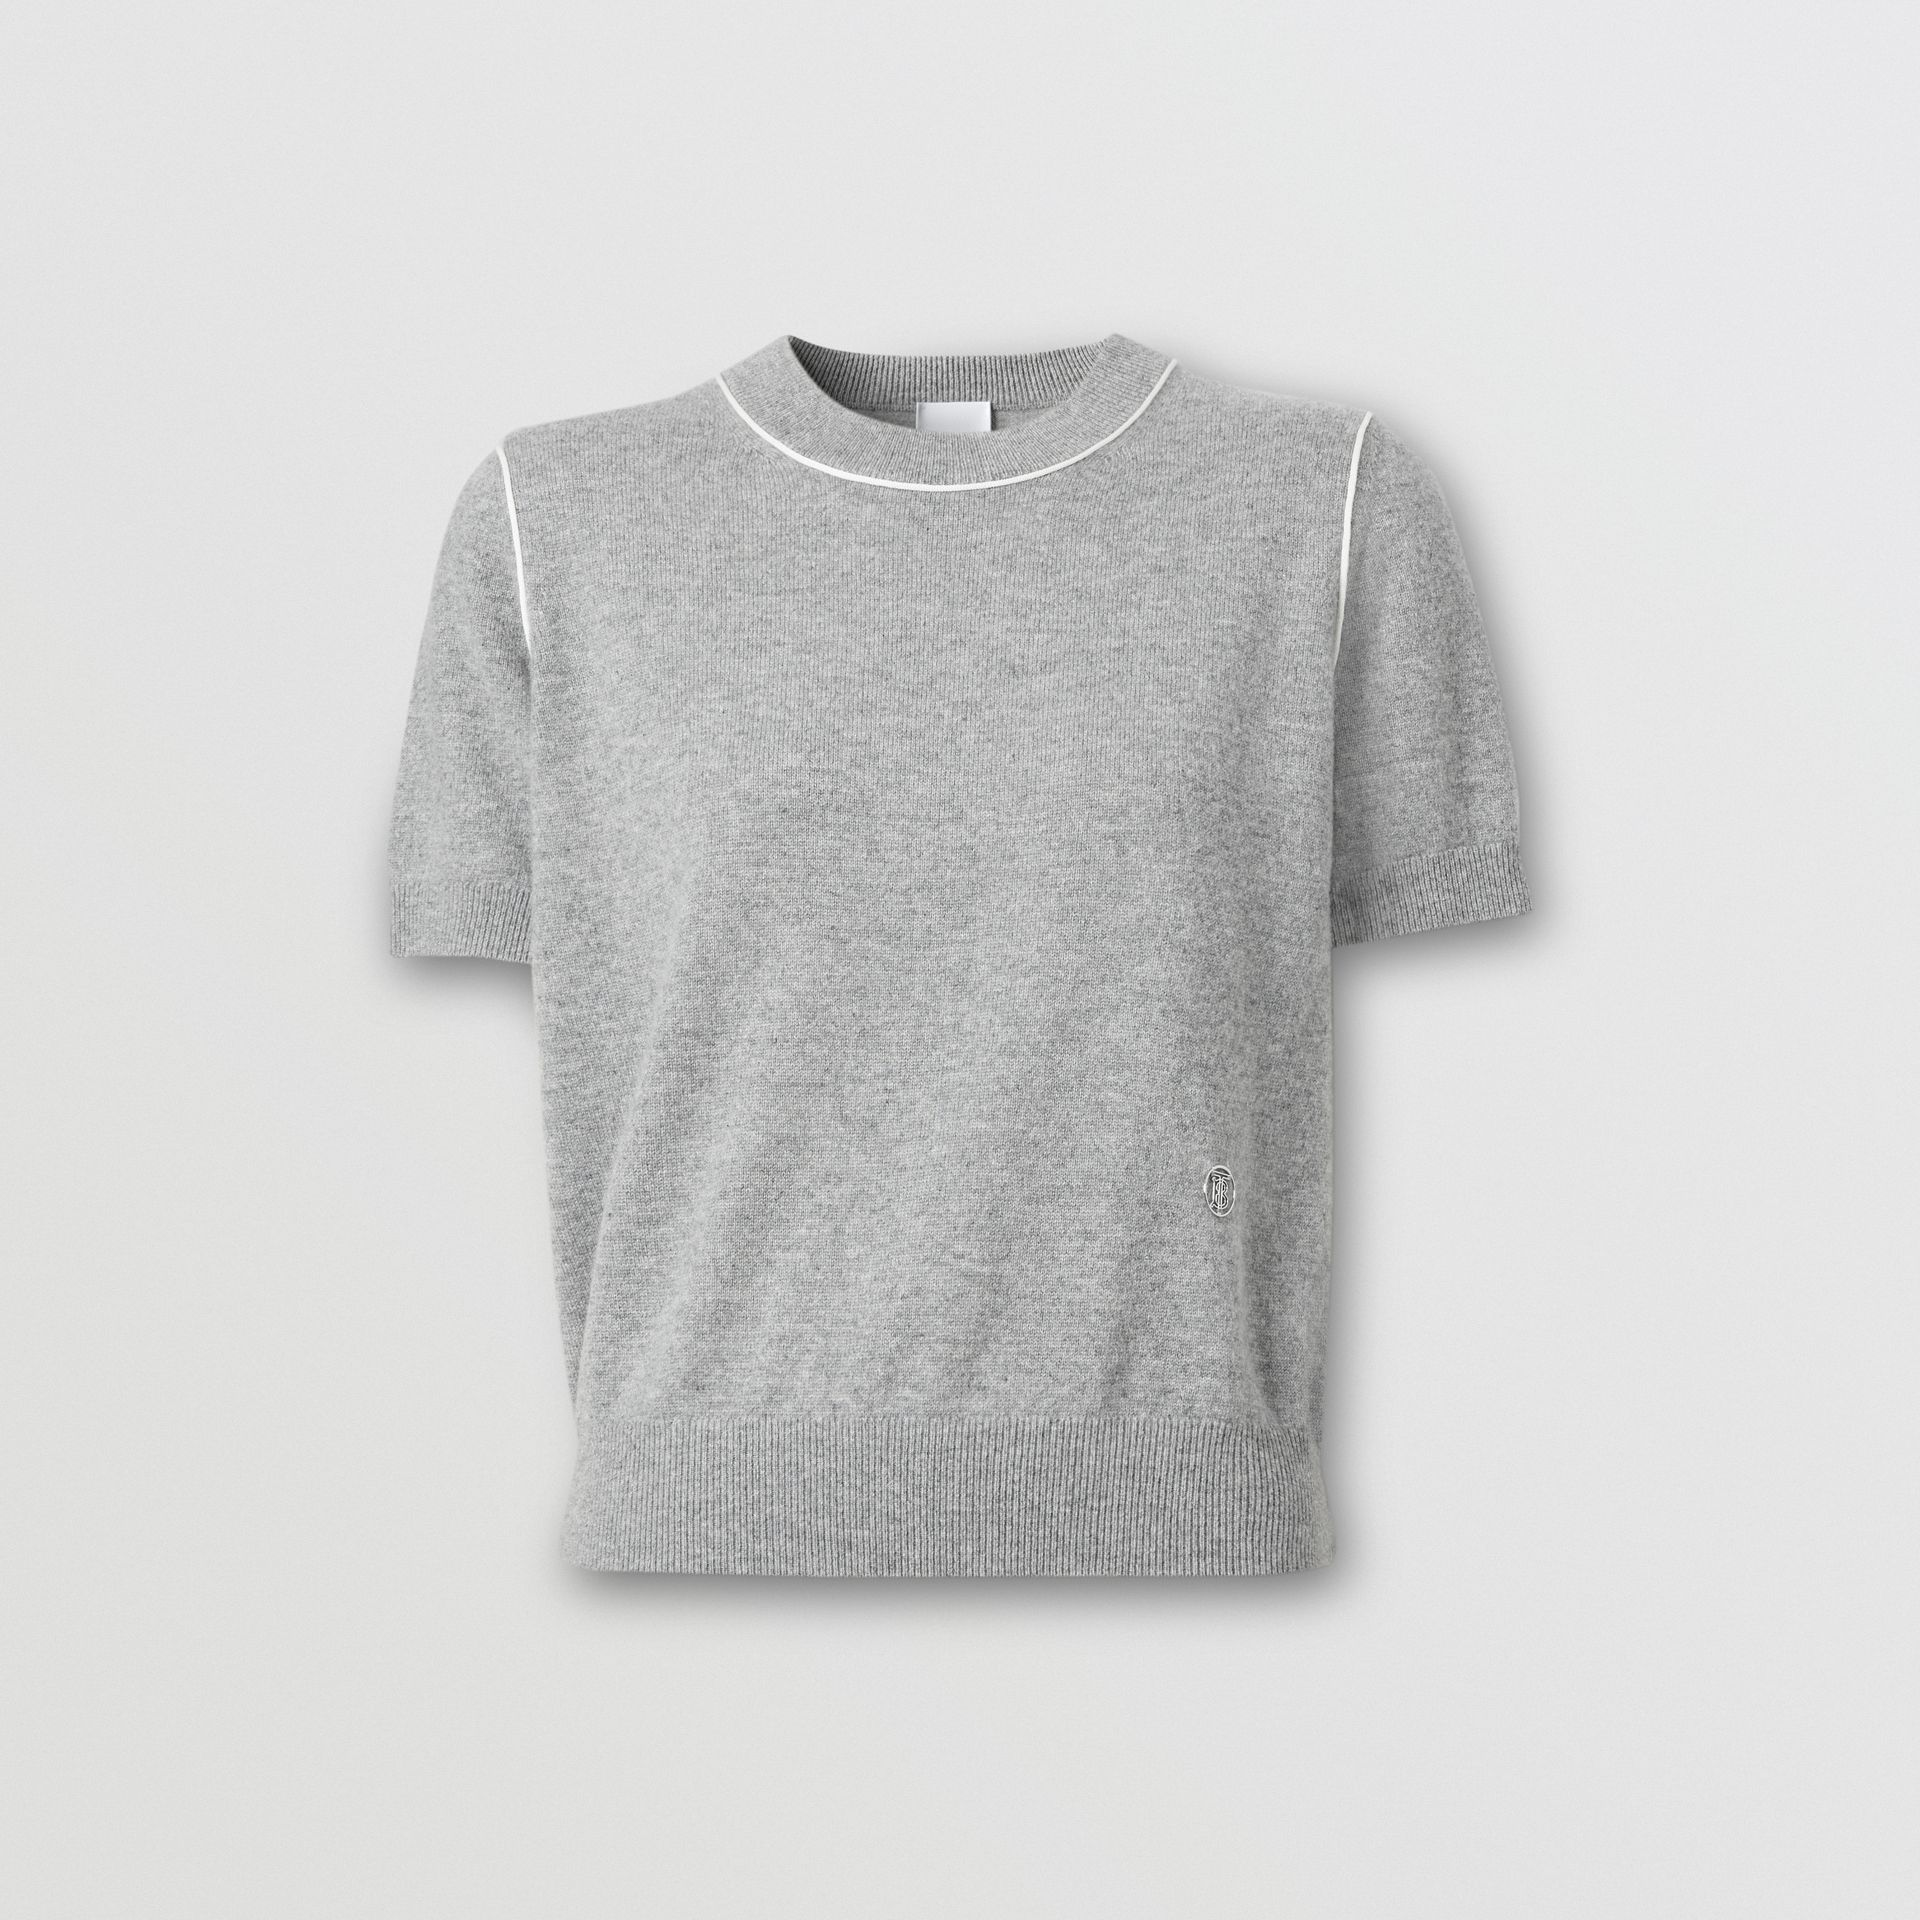 Short-sleeve Monogram Motif Cashmere Top in Grey Melange - Women | Burberry Australia - gallery image 3